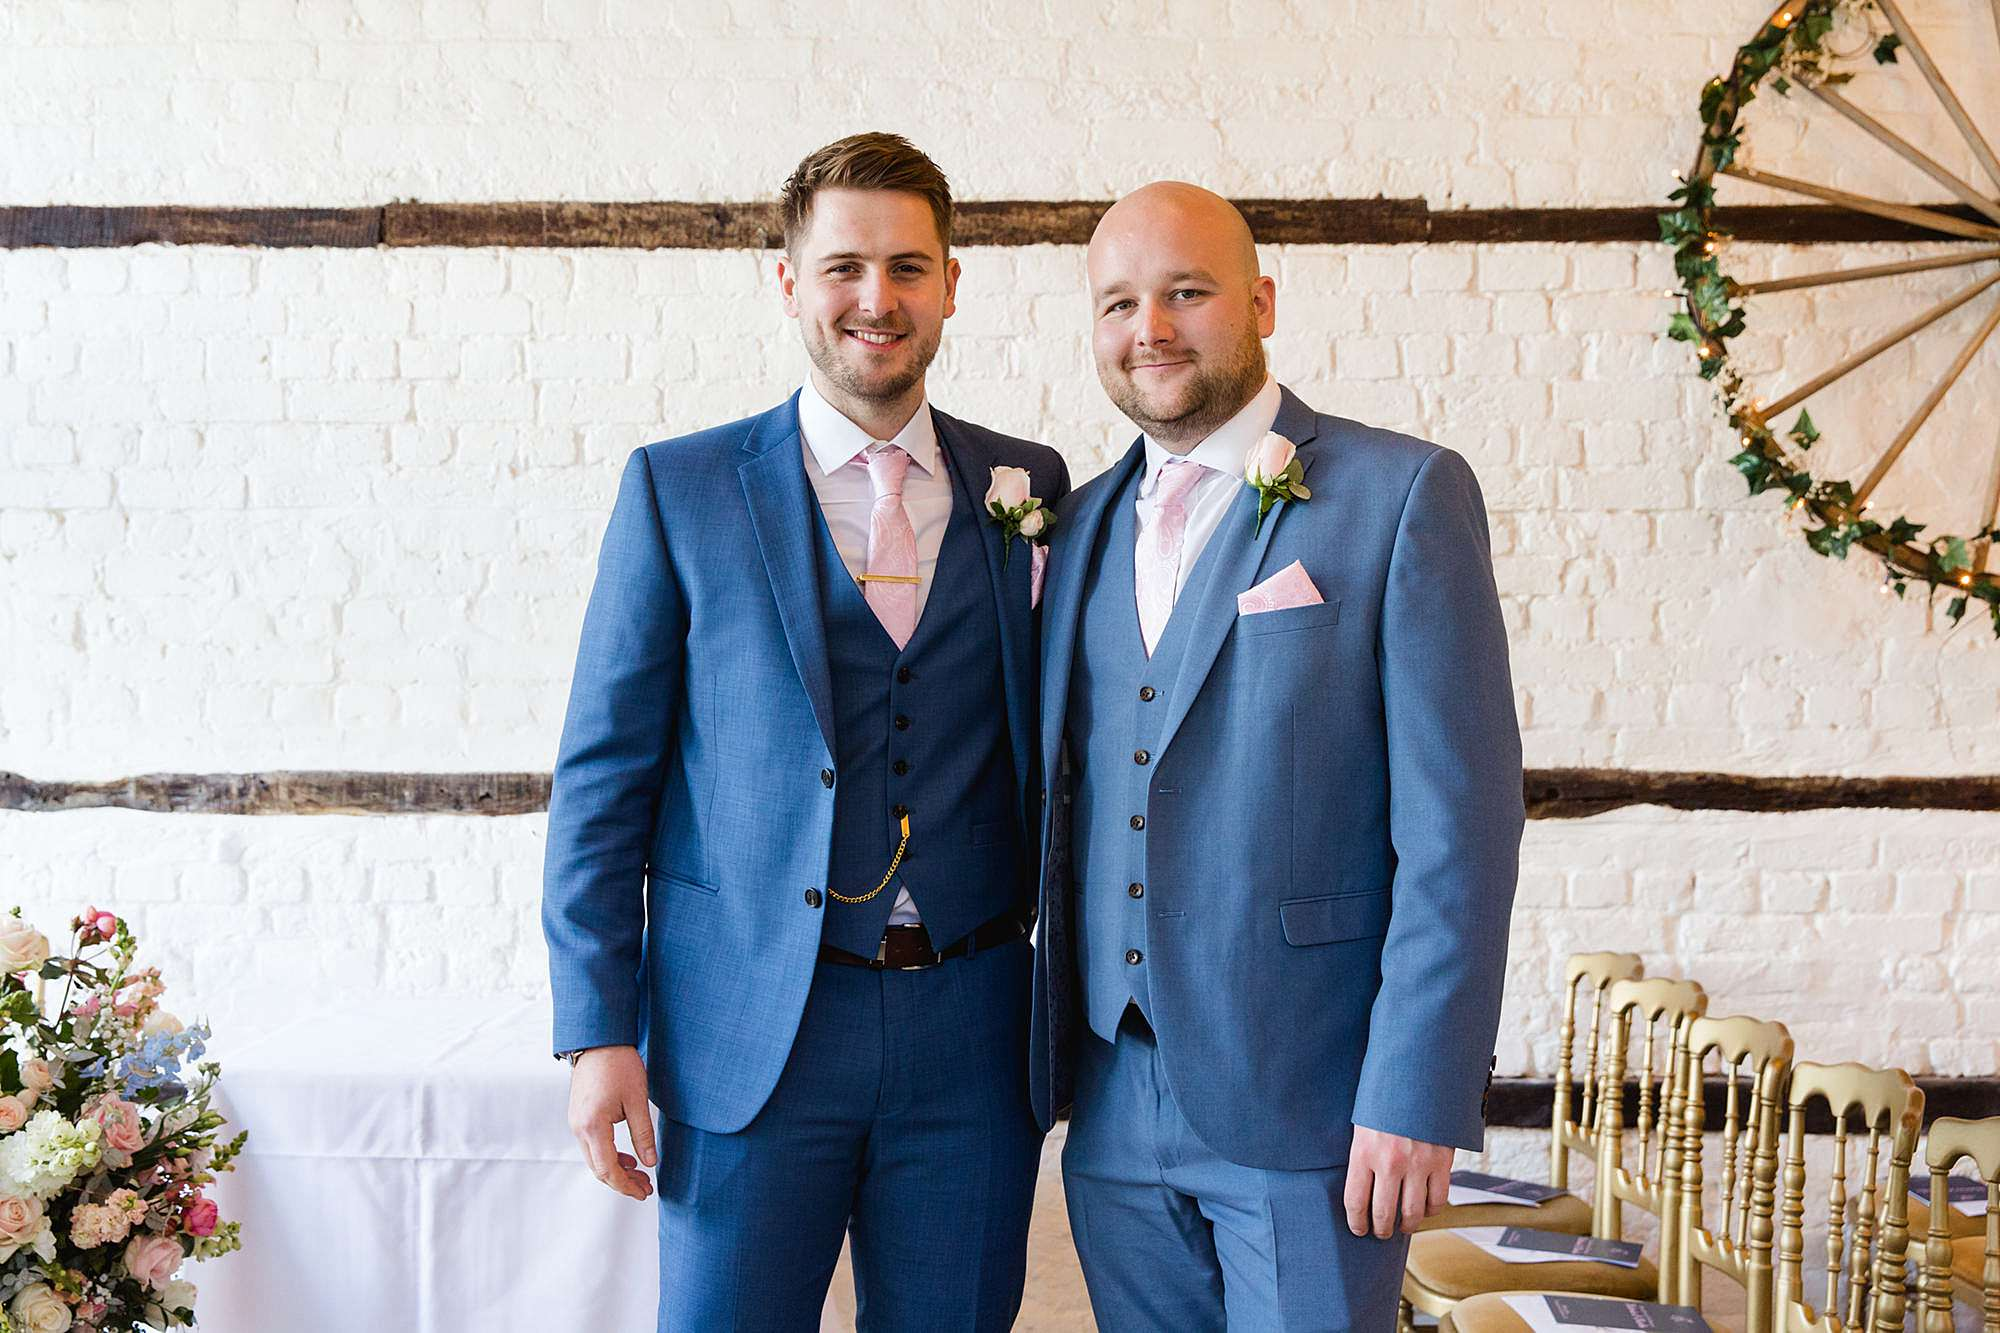 Lillibrooke Manor wedding groom and best man ahead of ceremnony